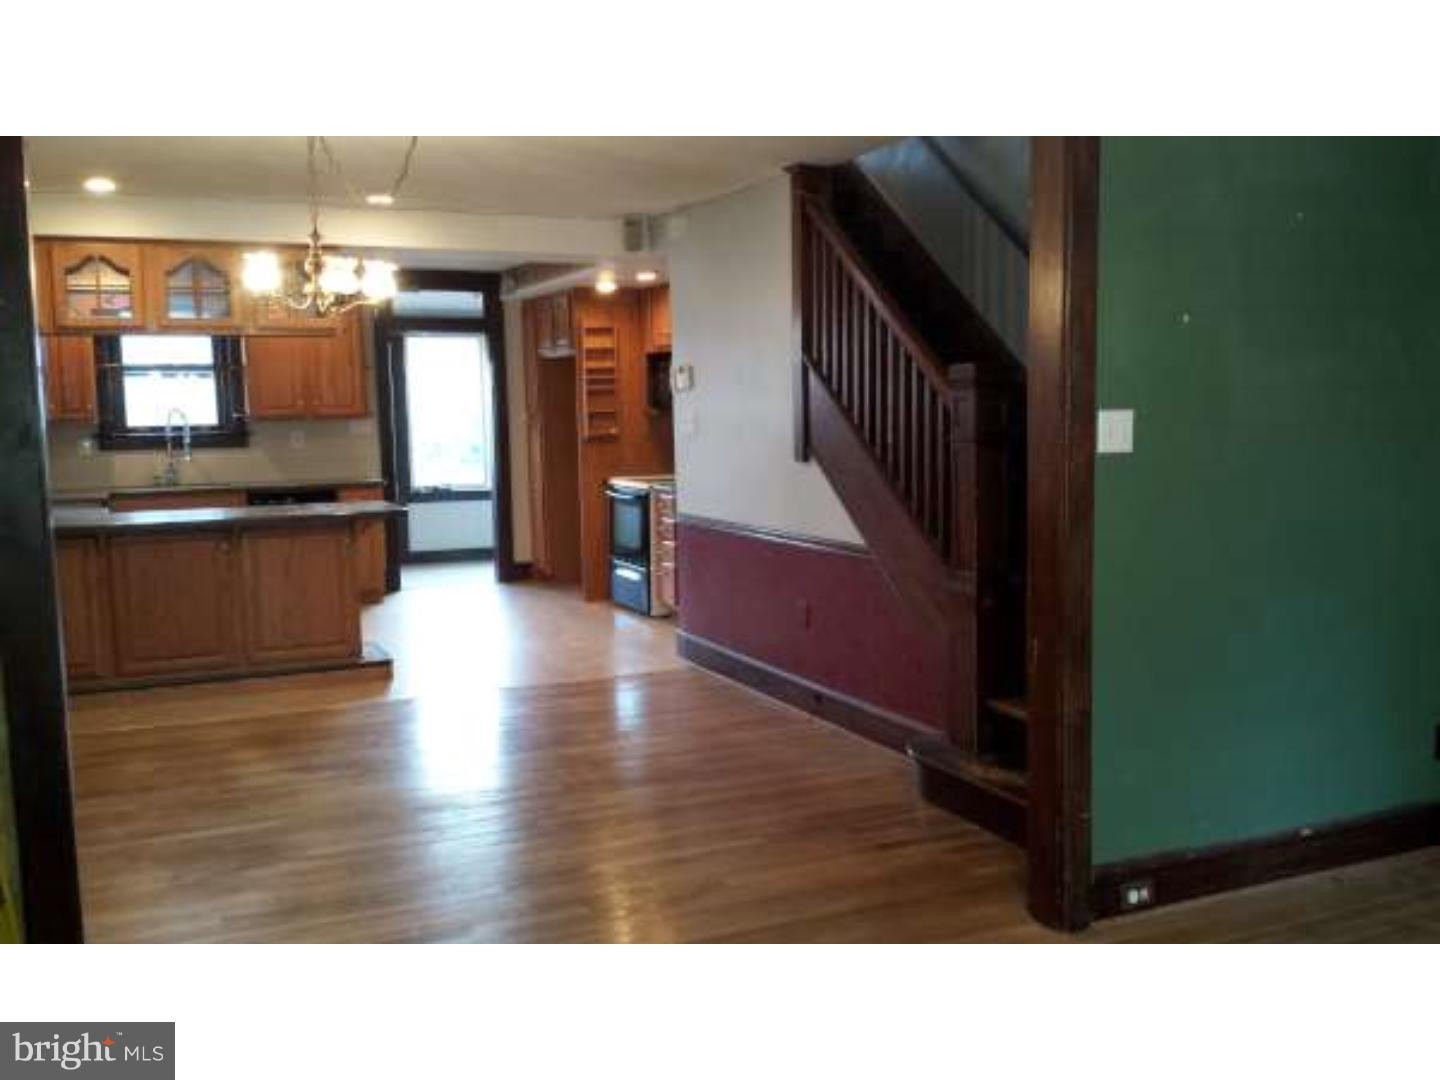 hardwood floor refinishing bucks county pa of 4 and more bedroom rentals in montgomery county montgomery county for 1475